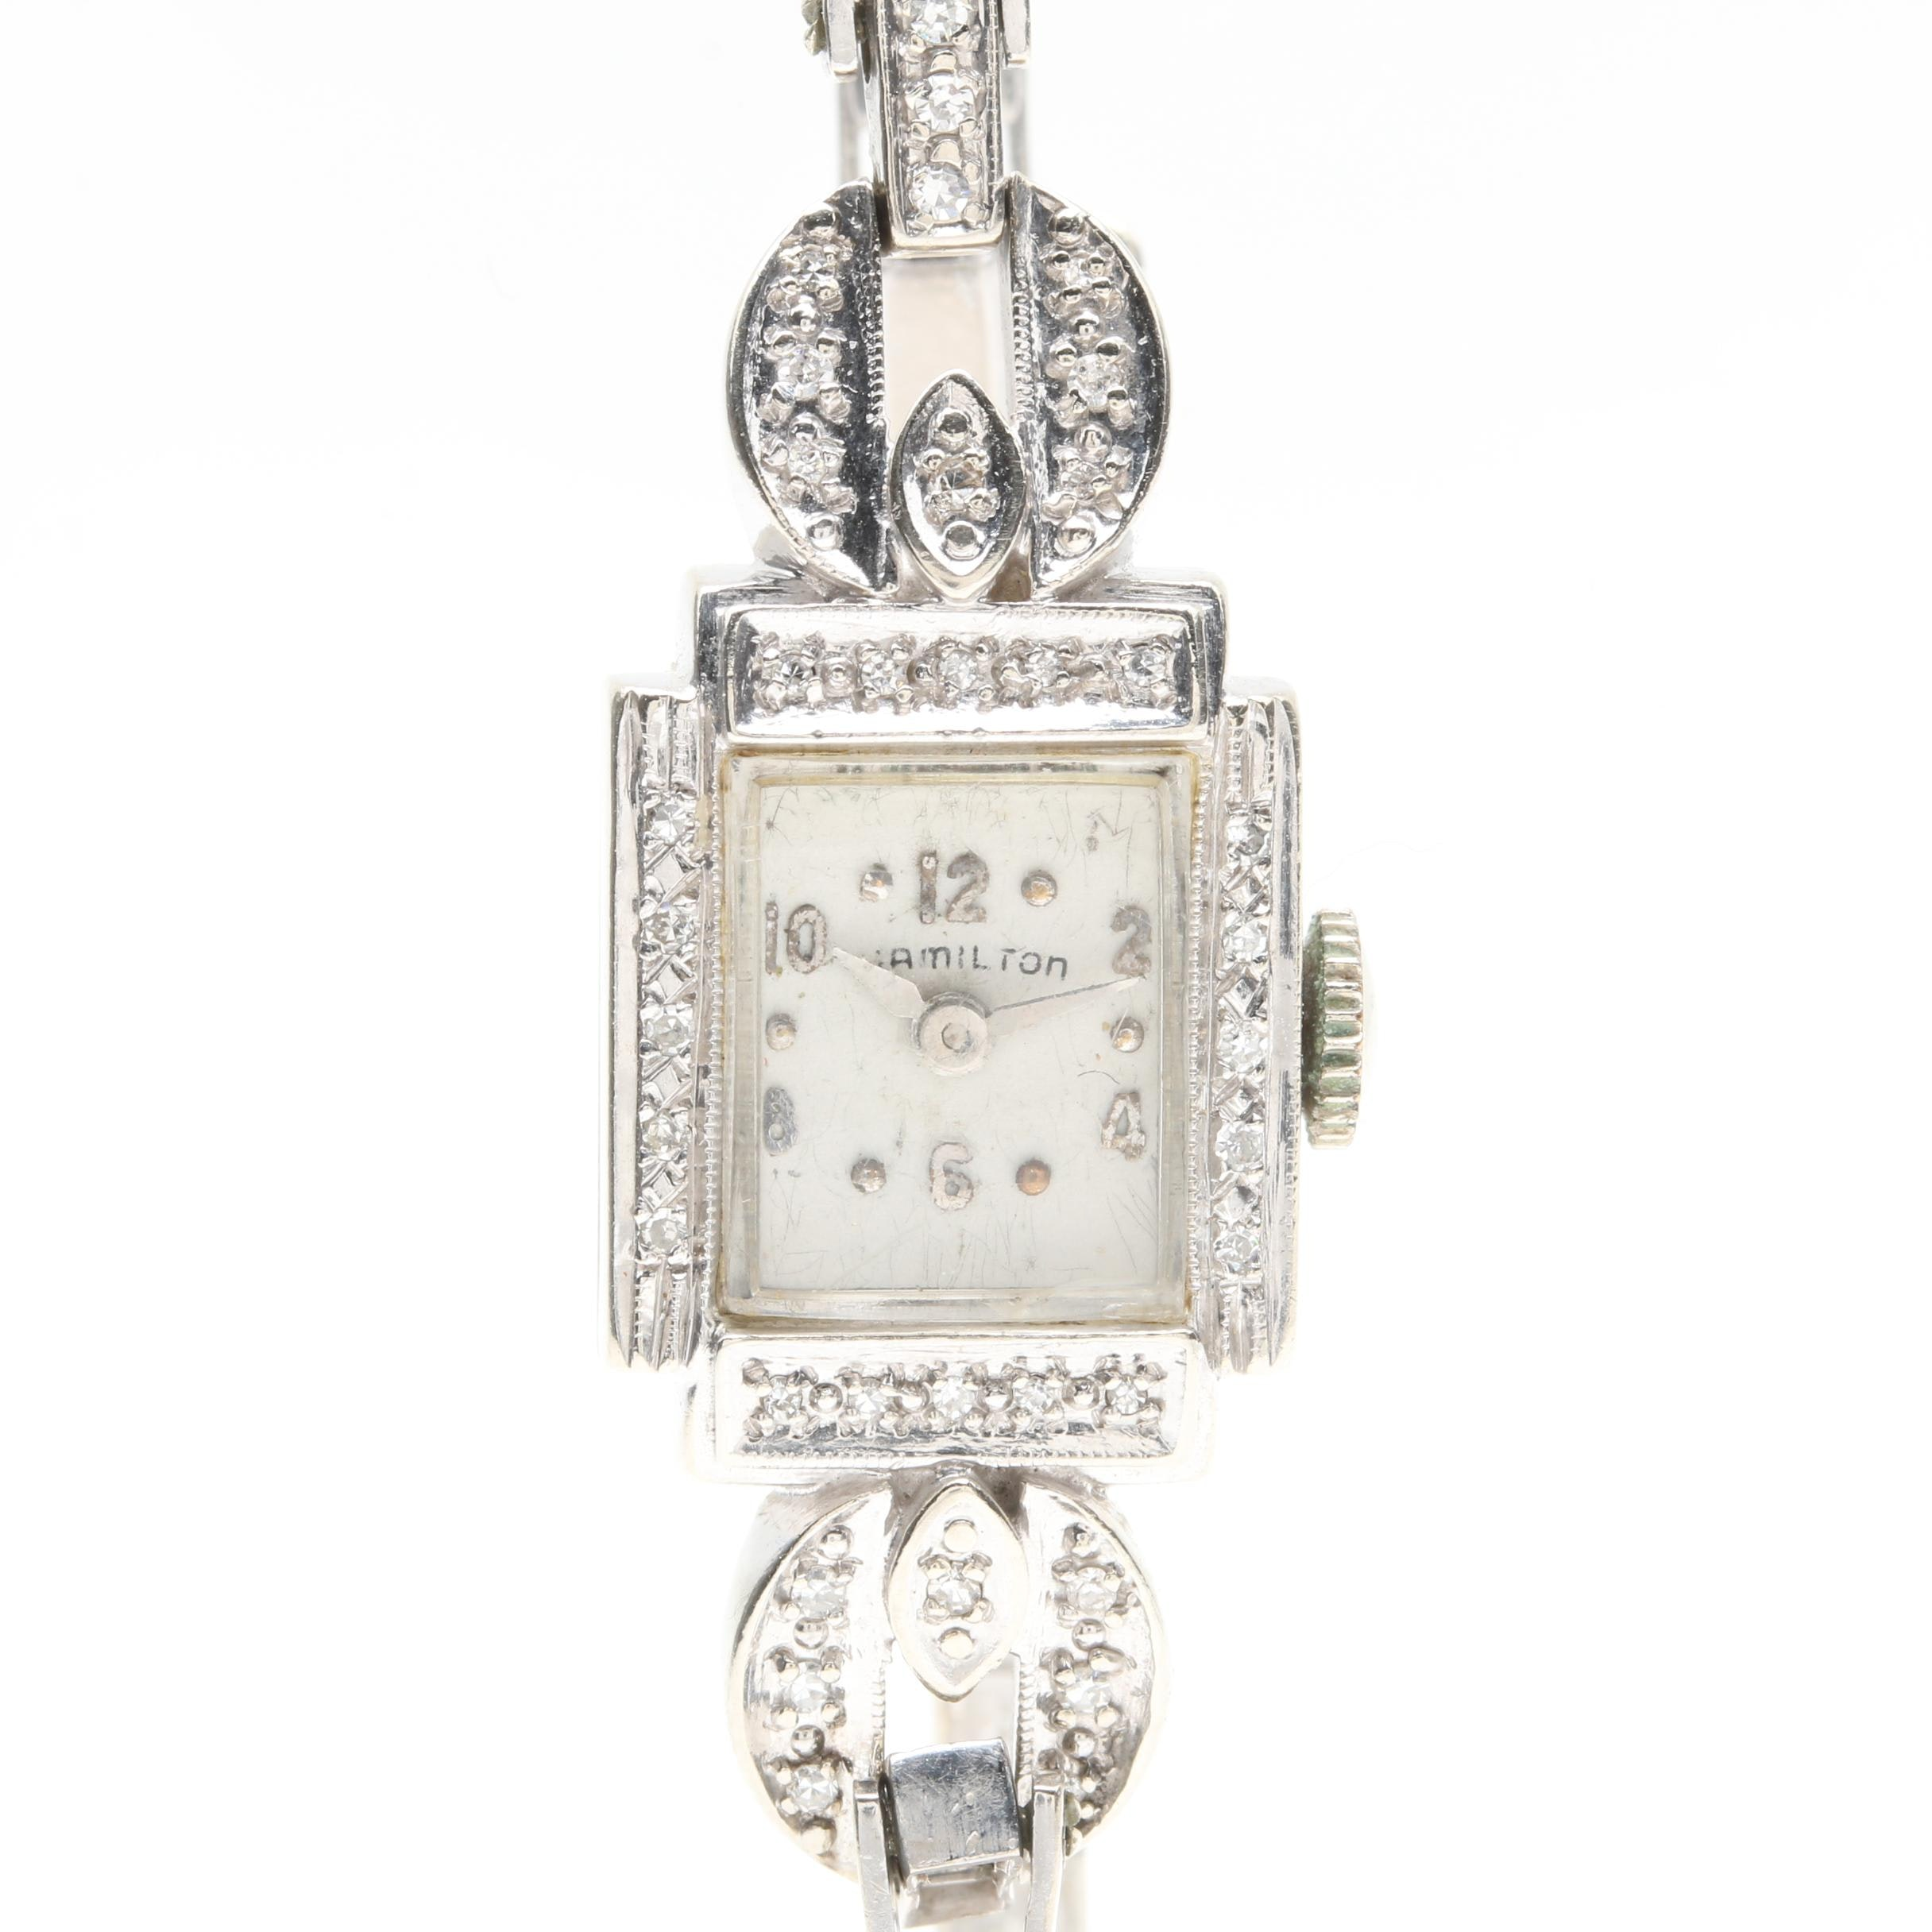 Hamilton 14K White Gold Diamond Wristwatch